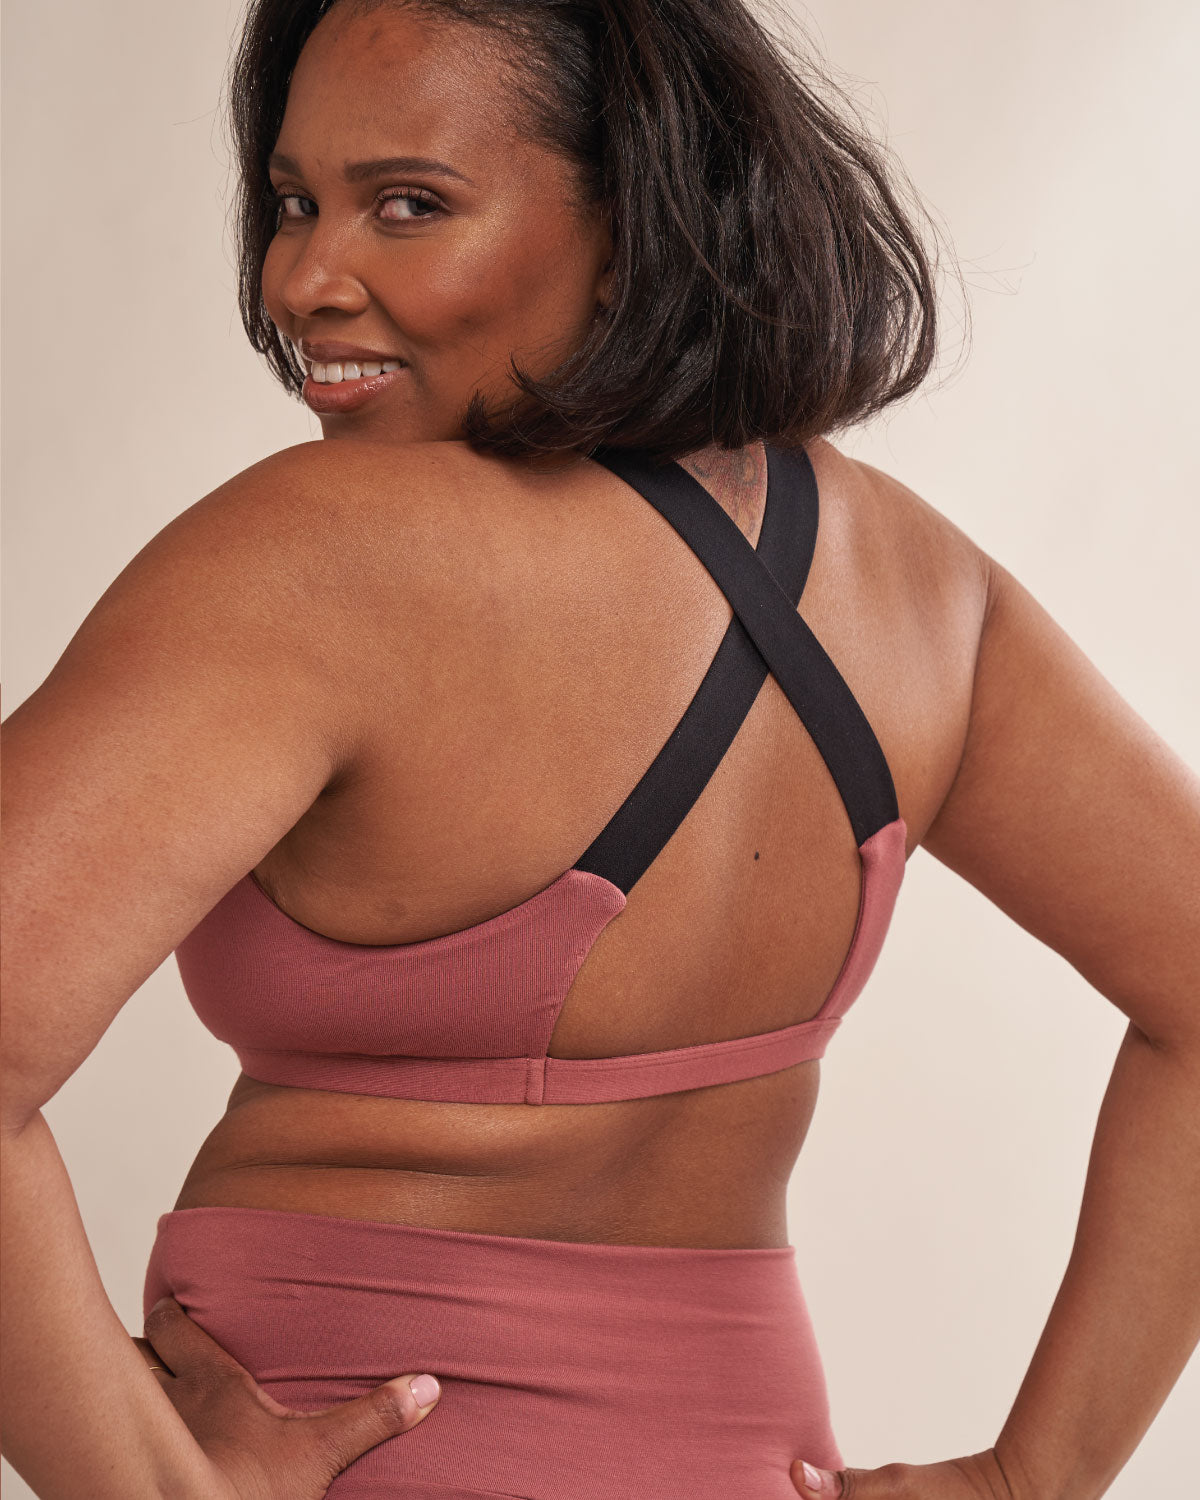 Niya Pullover Bra for Implants